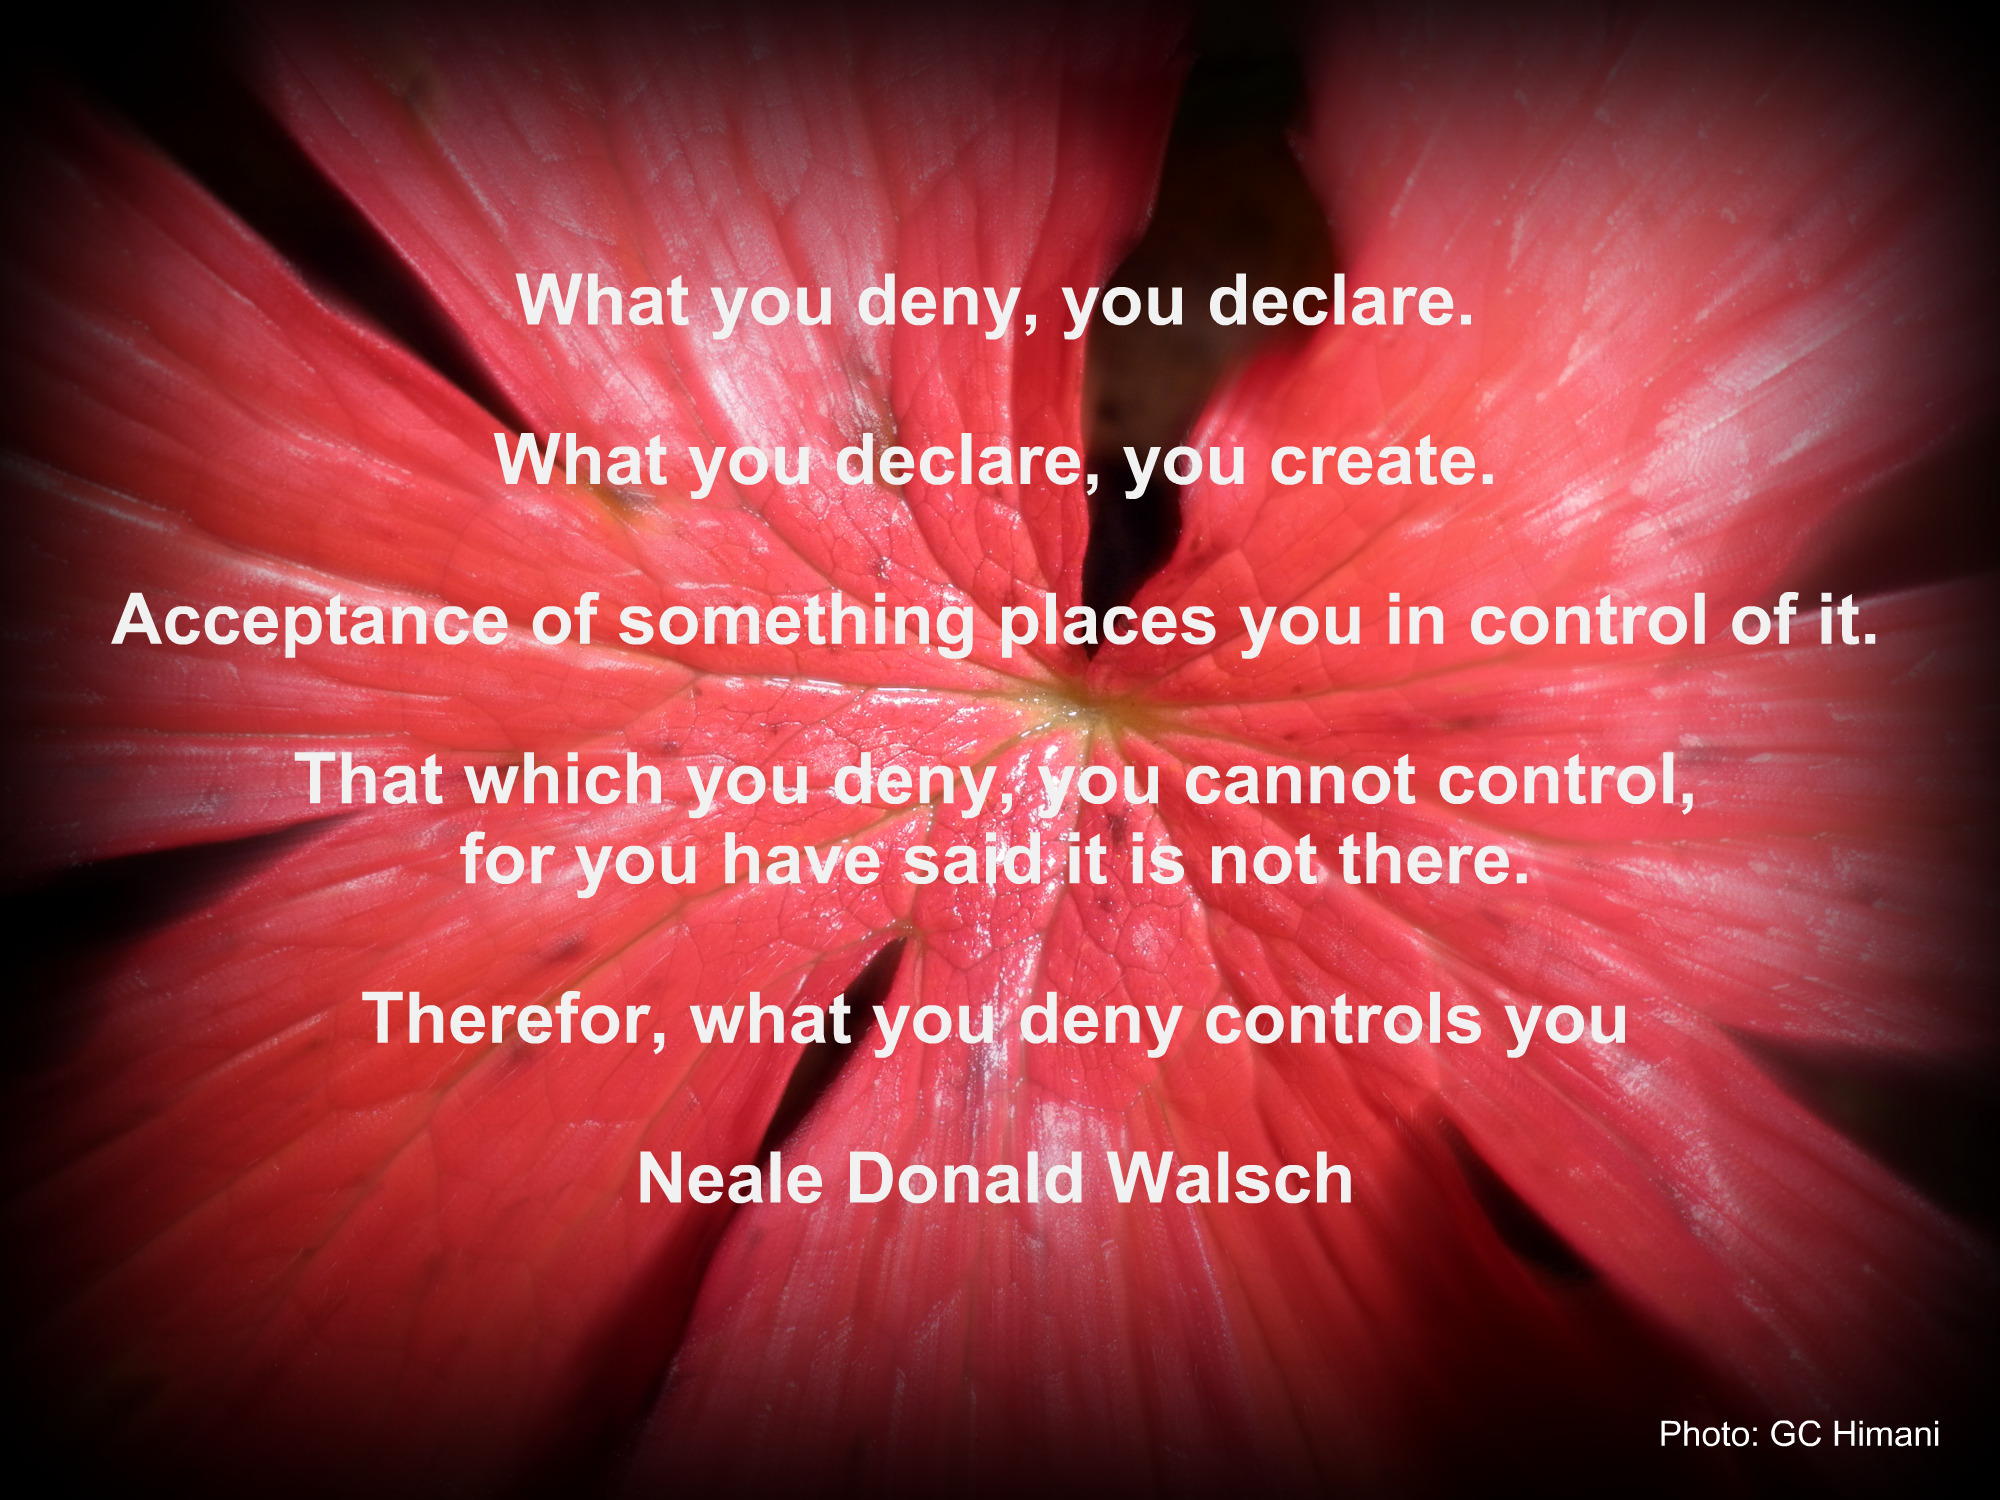 Neale Donald Walsch's quote #1